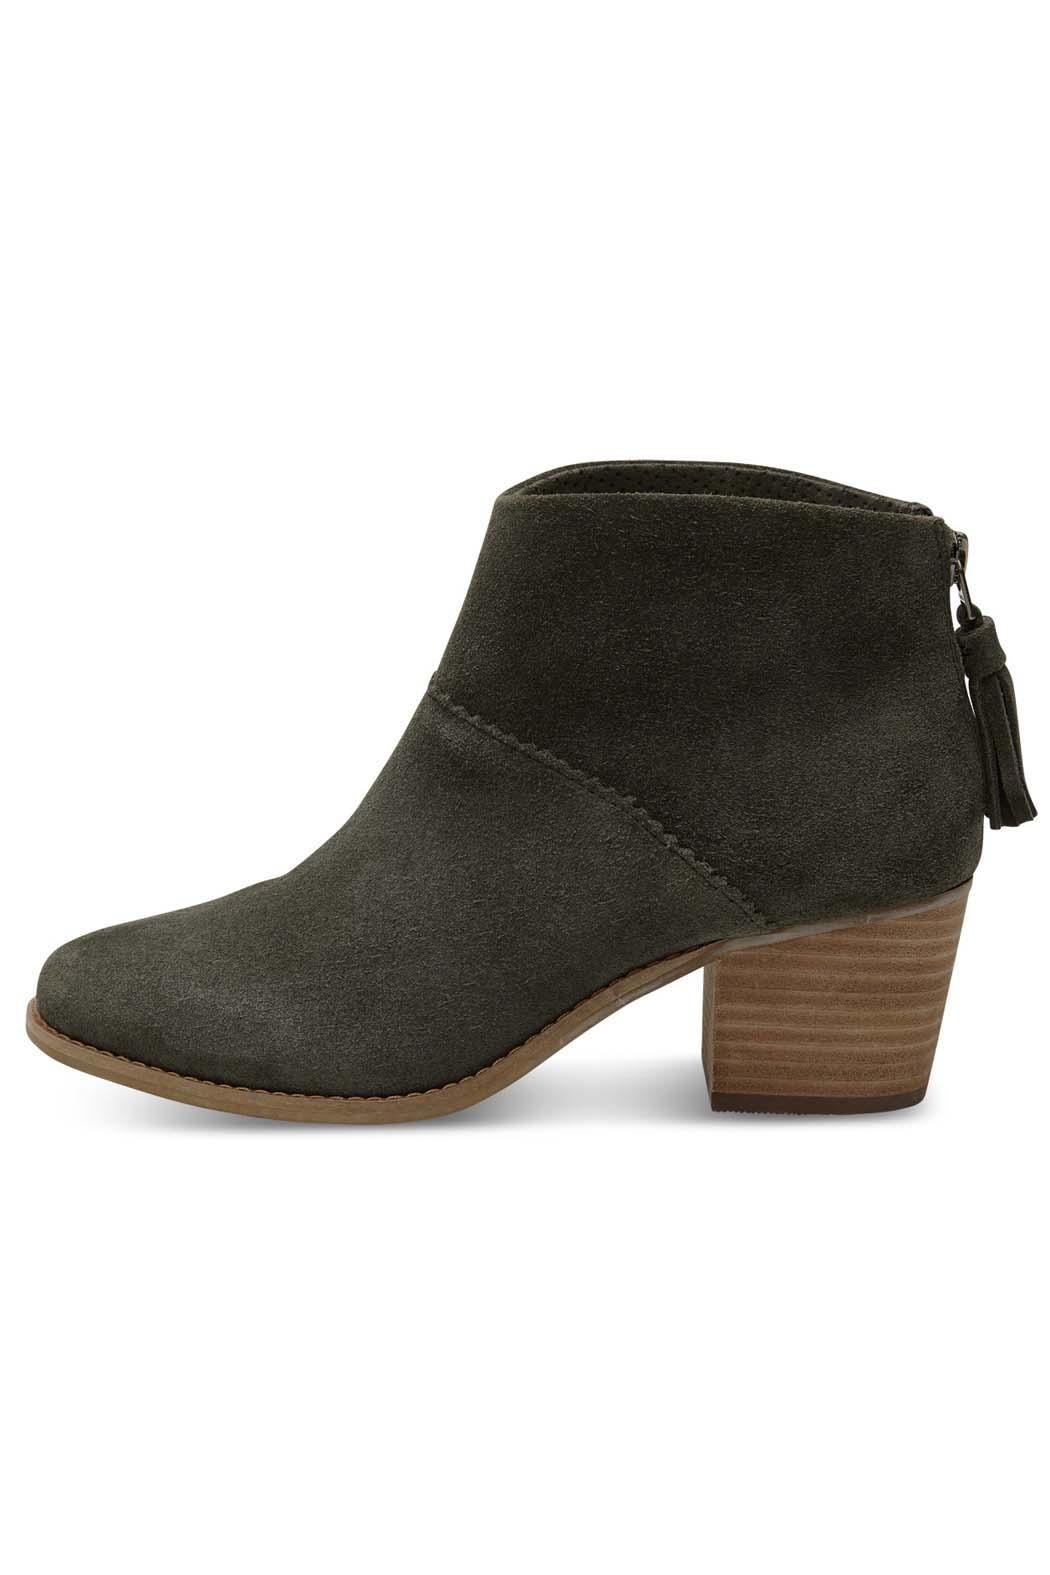 TOMS Forest Suede Bootie - Main Image